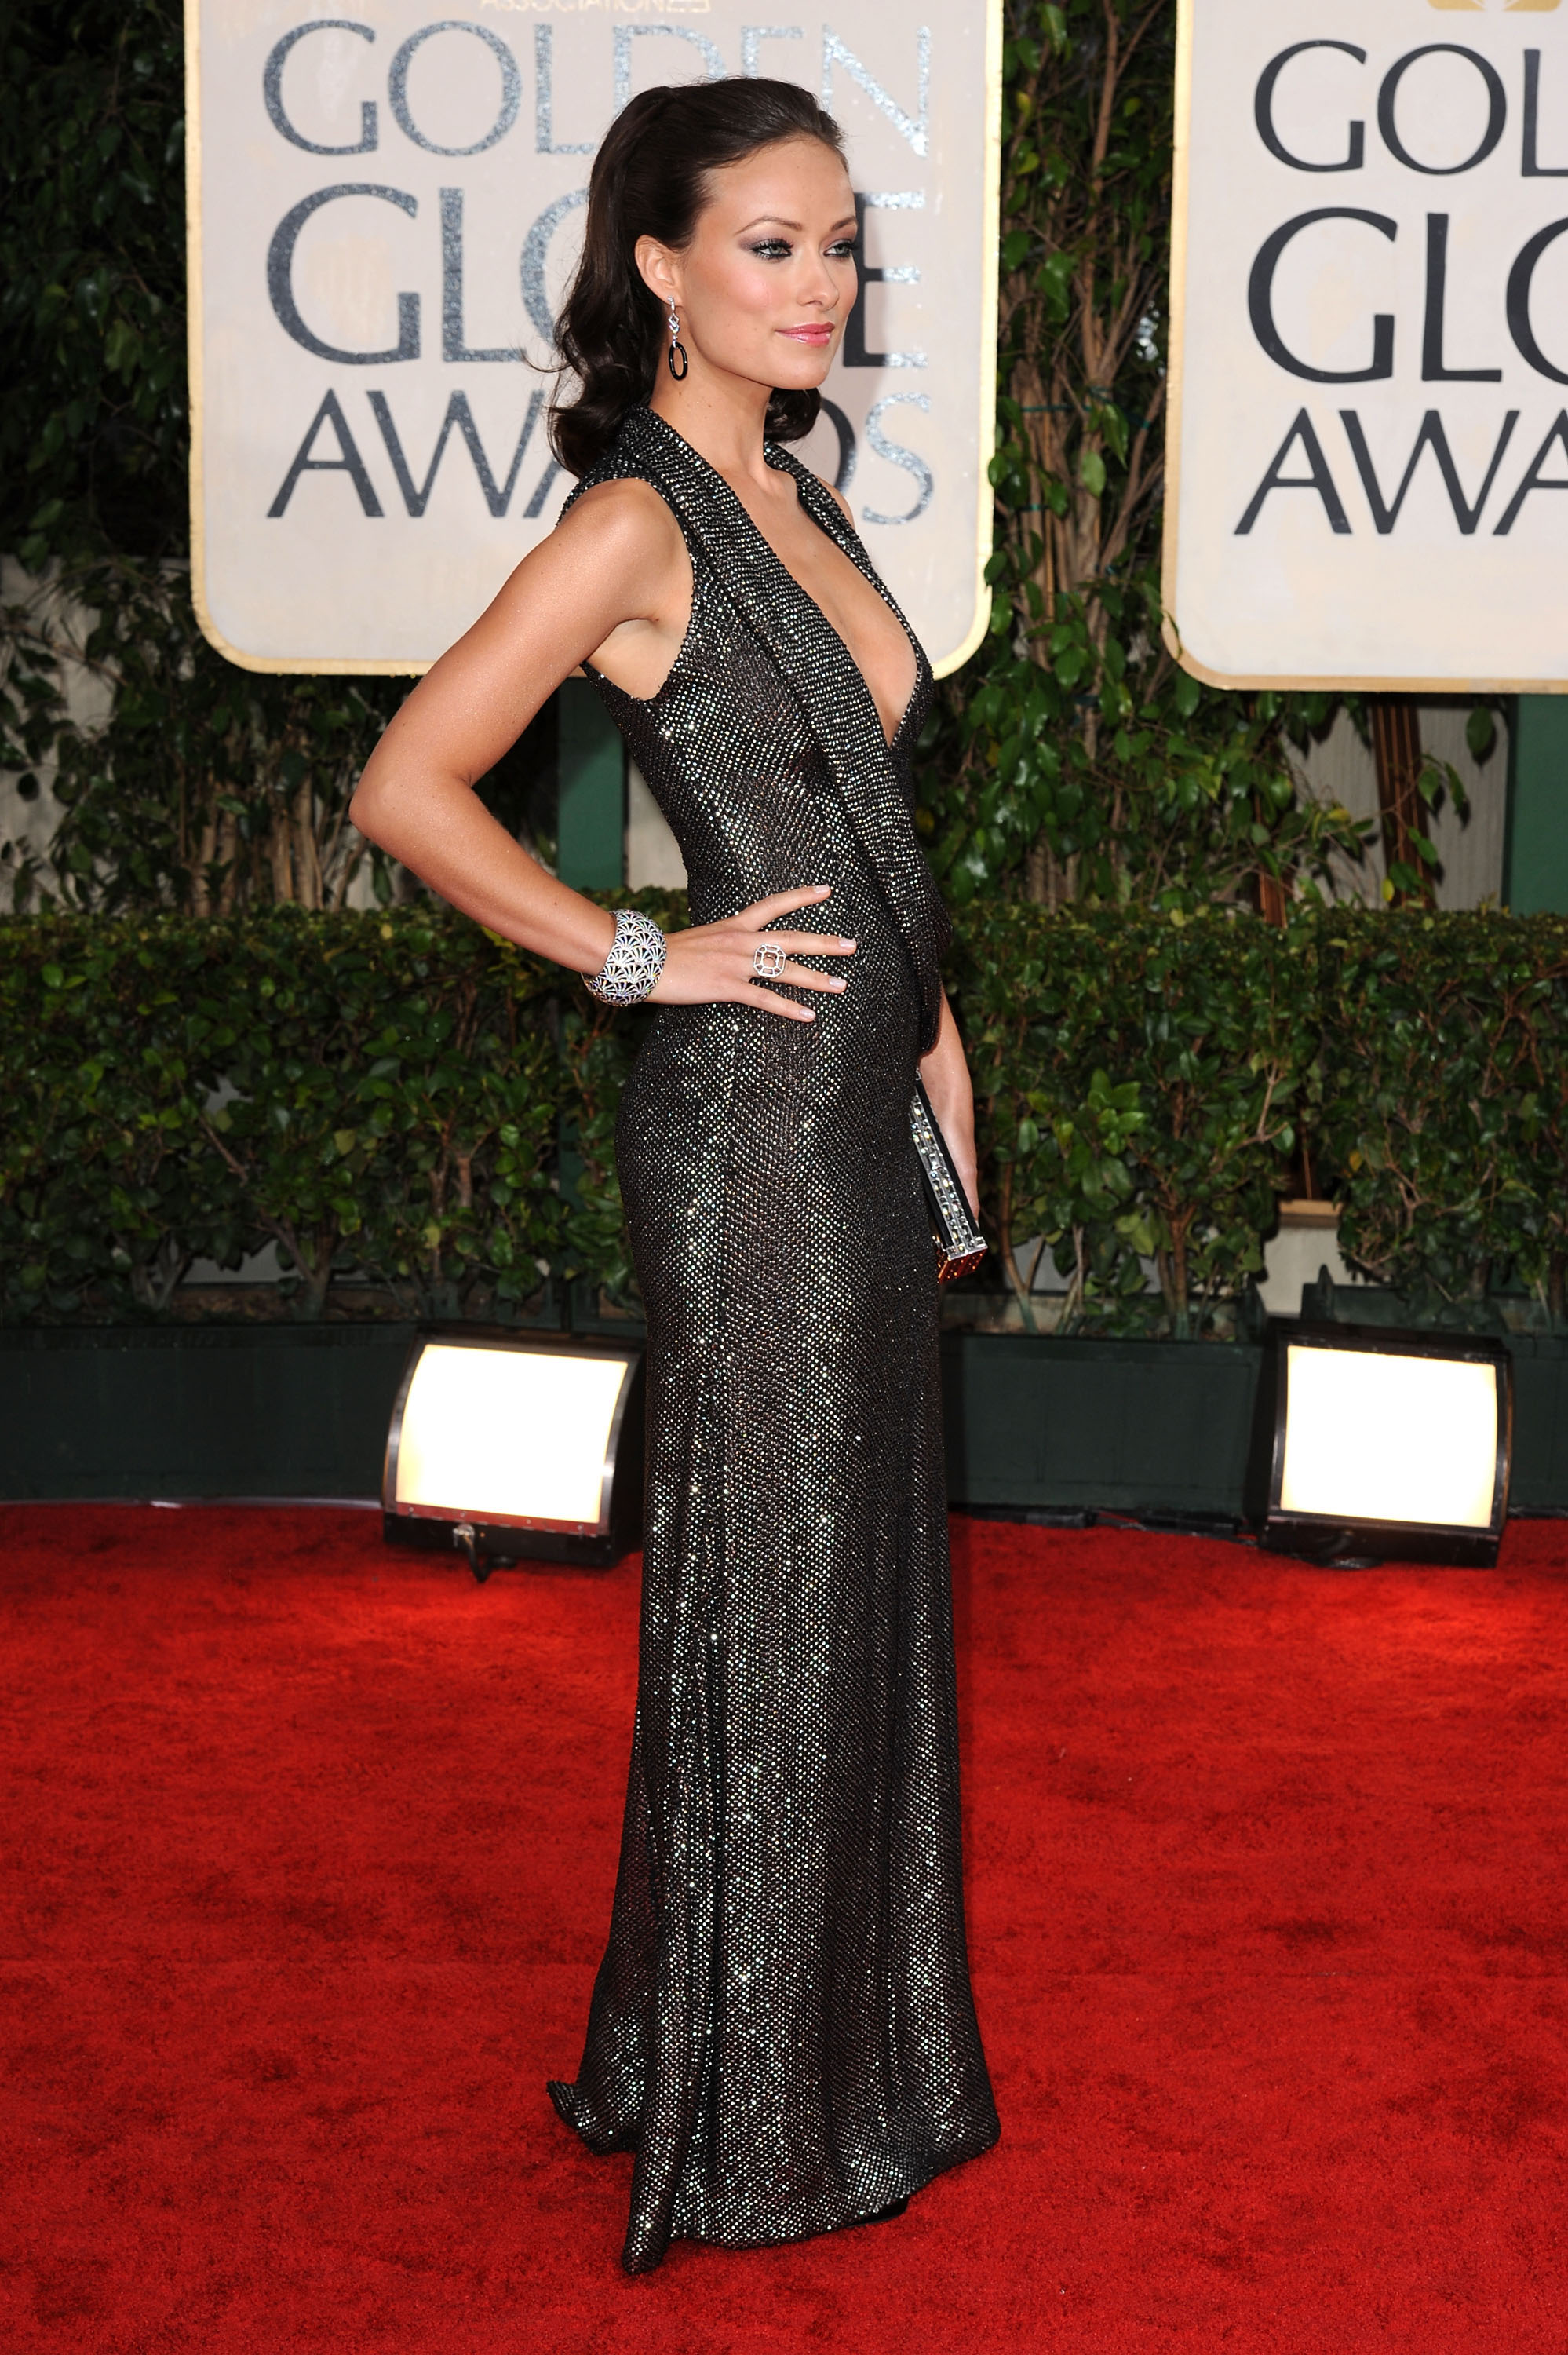 78084_Olivia_Wilde_arrives_at_the_67th_Annual_Golden_Globe_Awards-10_122_498lo.jpg